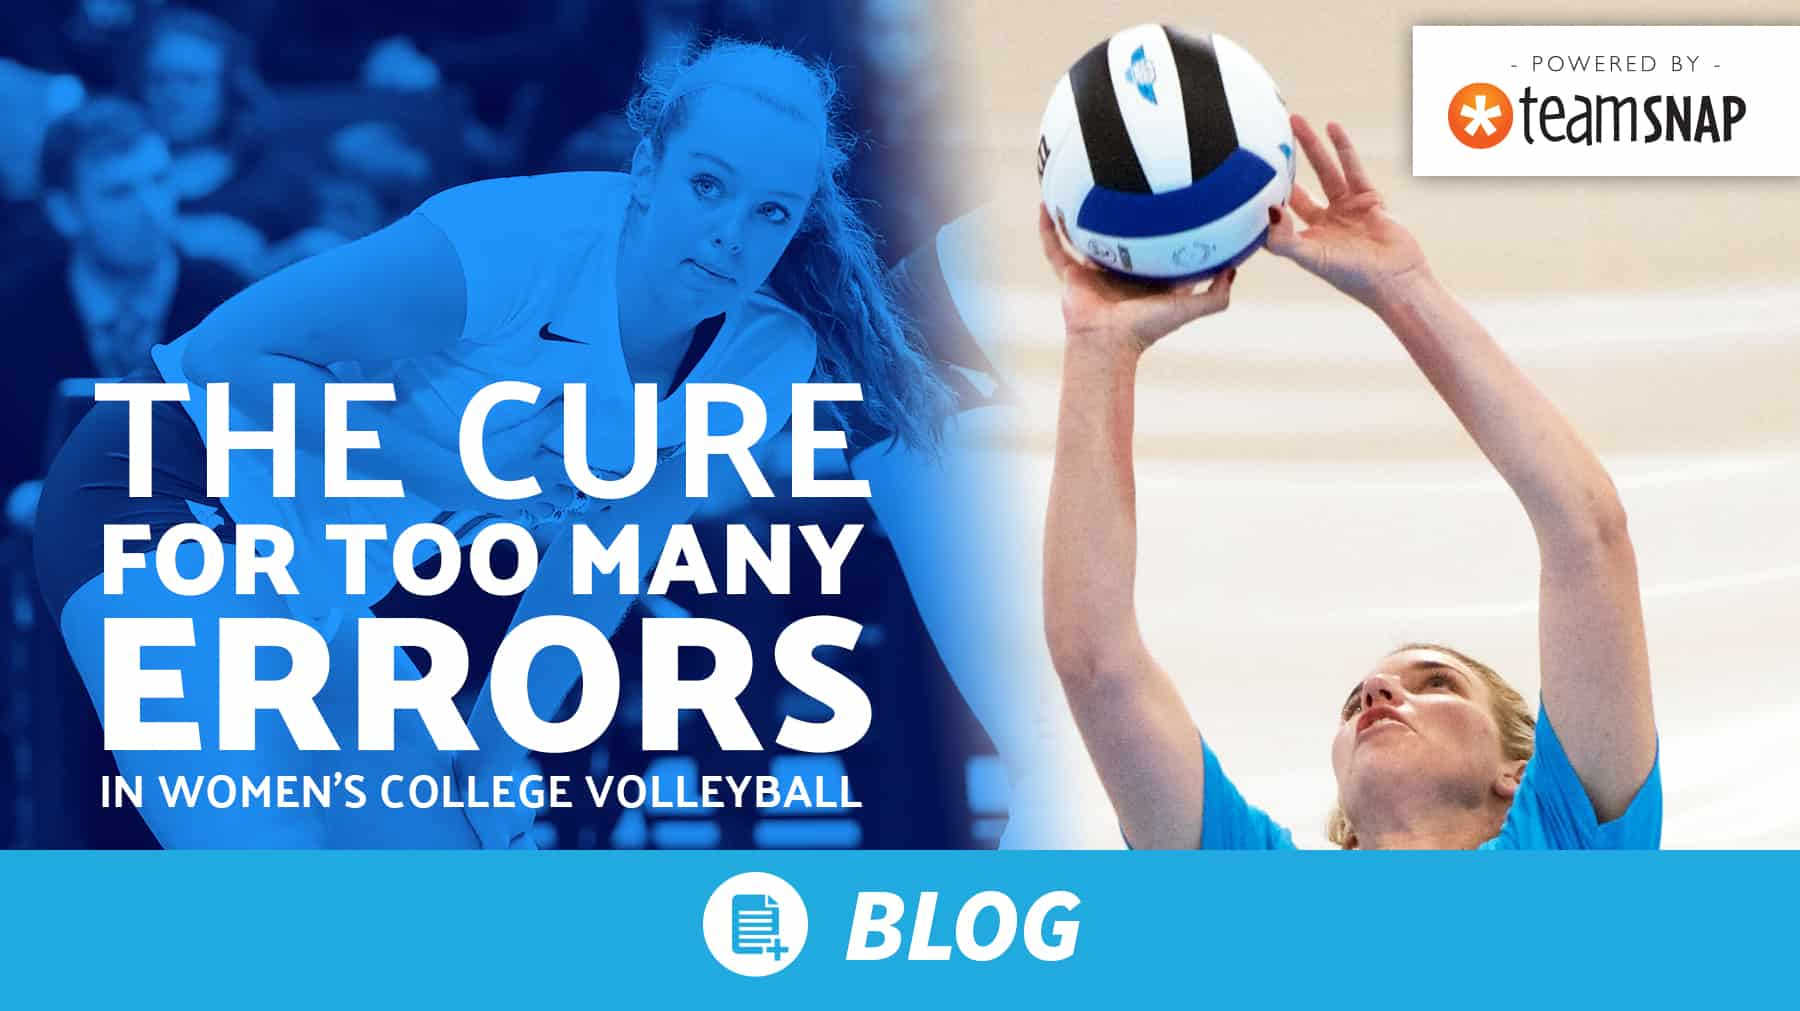 The cure for too many errors in women's college volleyball